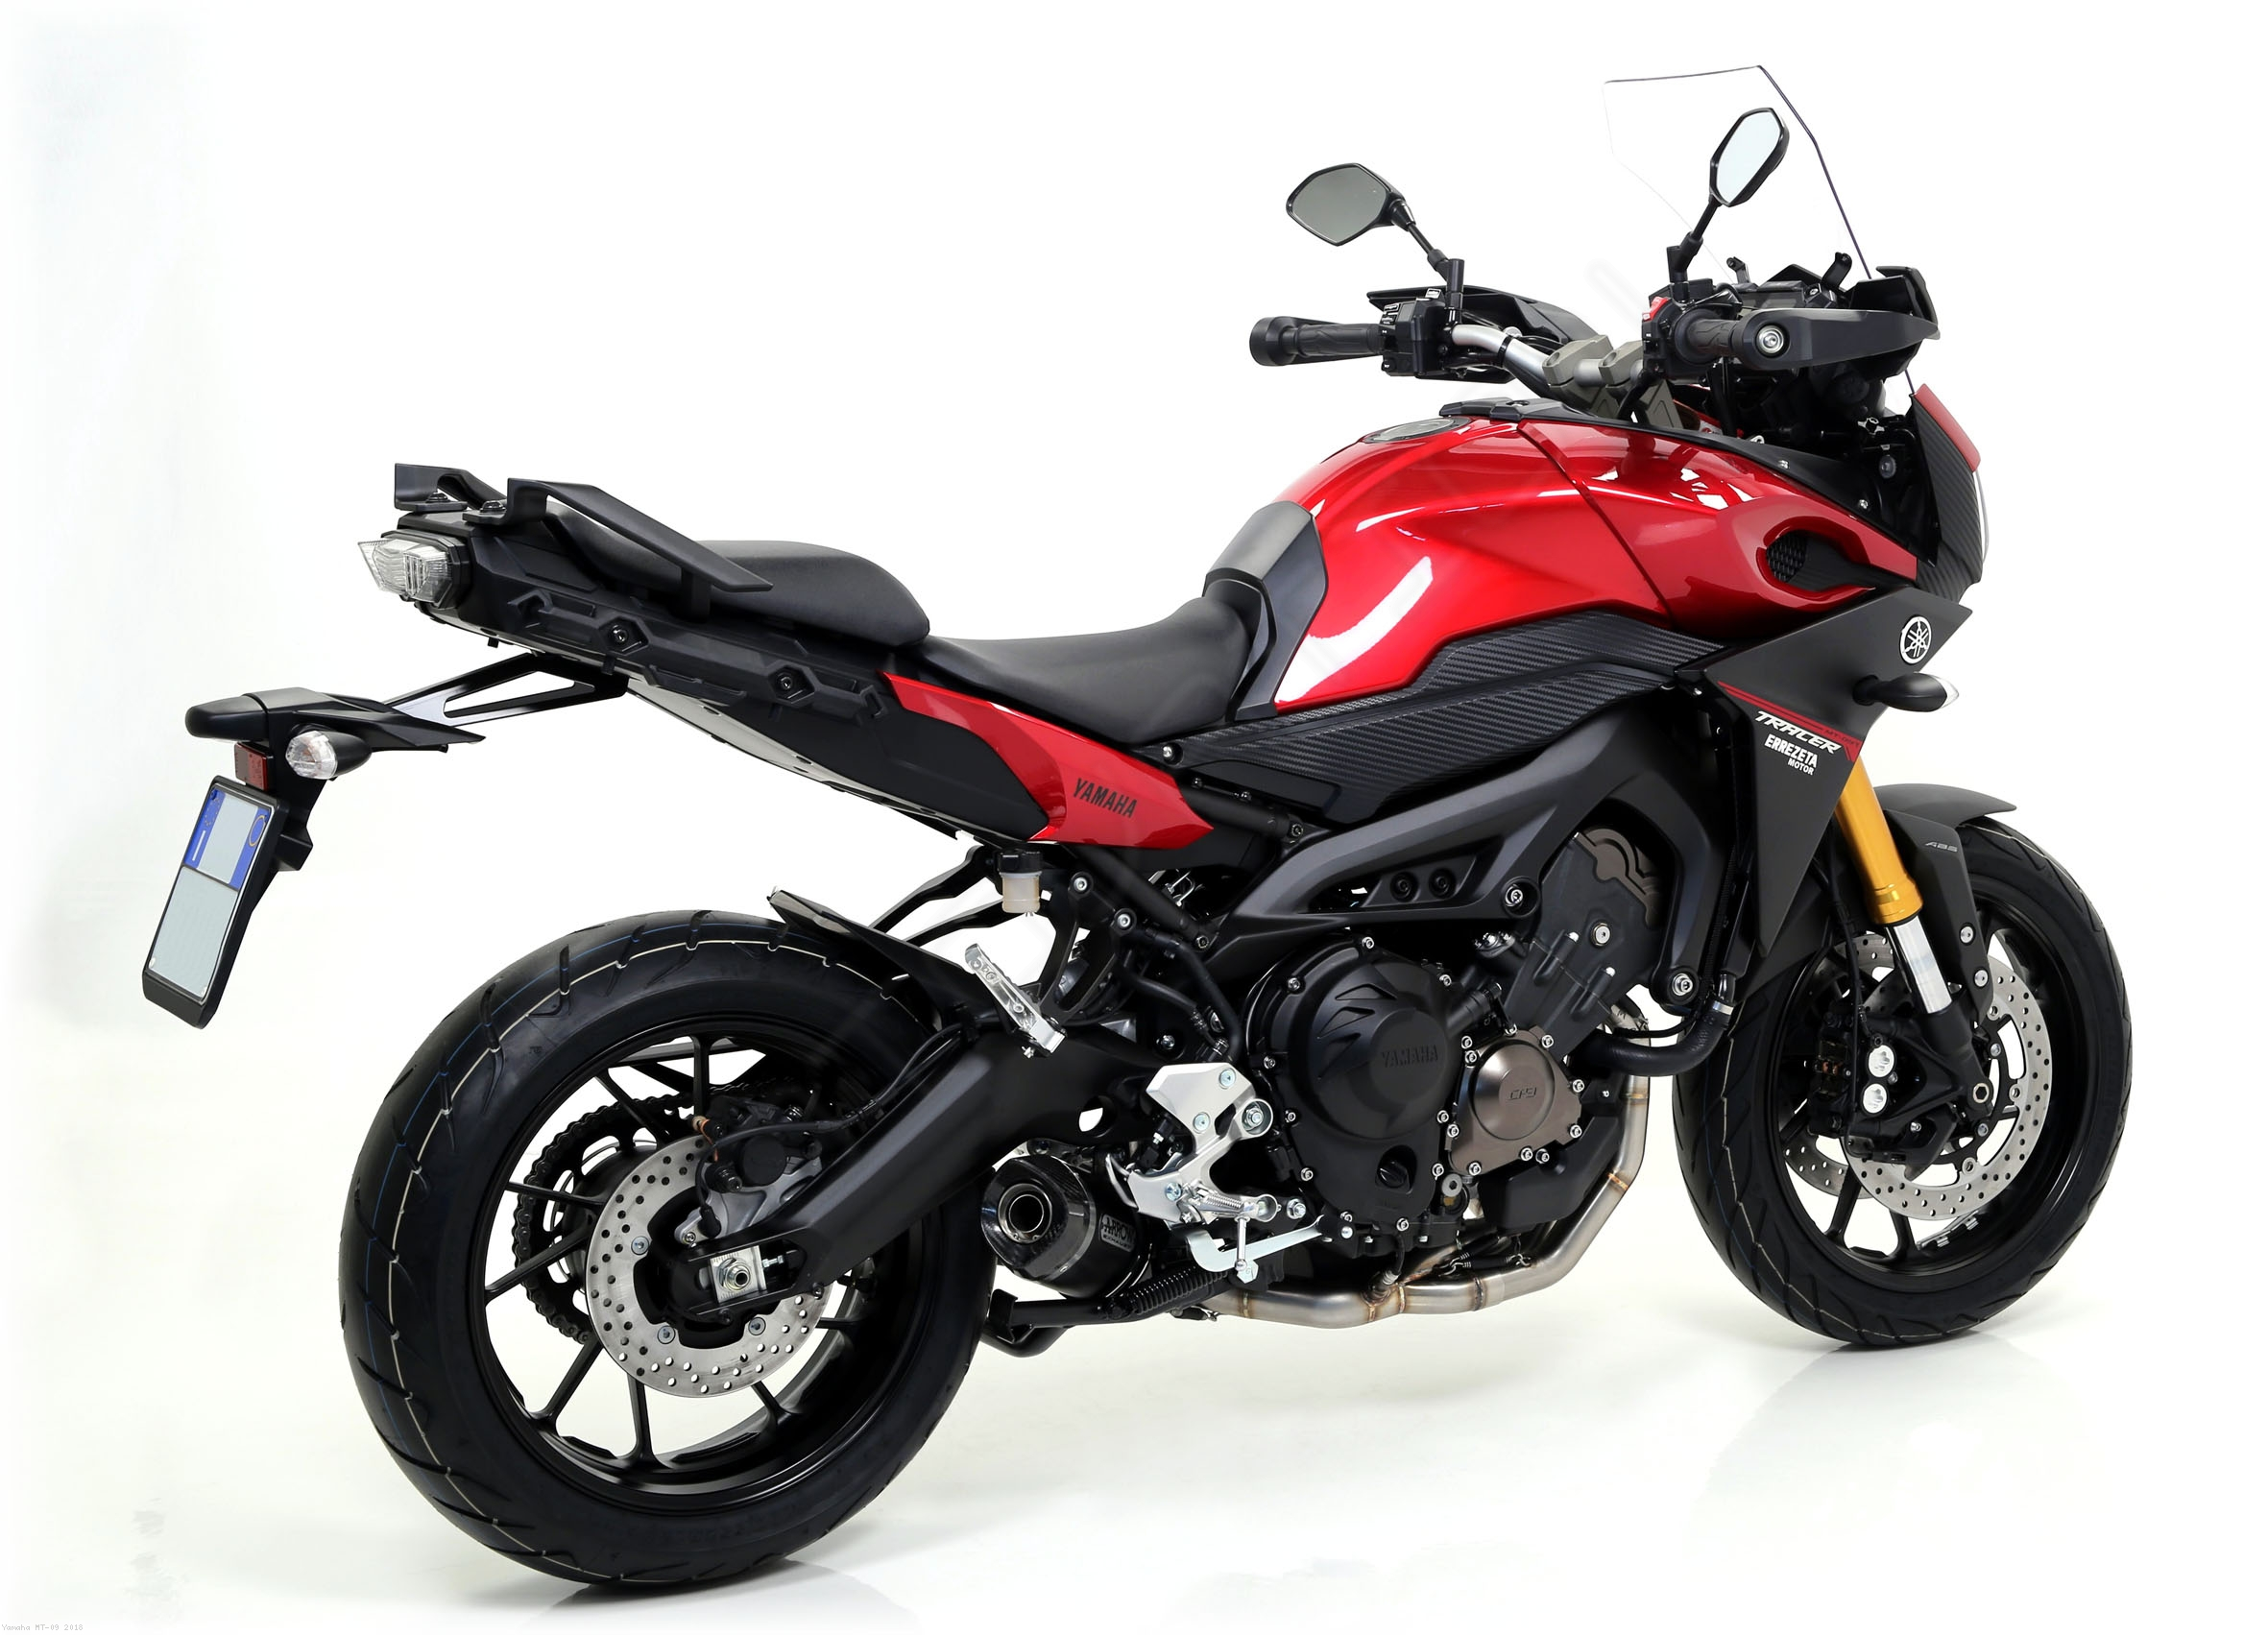 street 39 thunder 39 full exhaust system by arrow yamaha mt. Black Bedroom Furniture Sets. Home Design Ideas